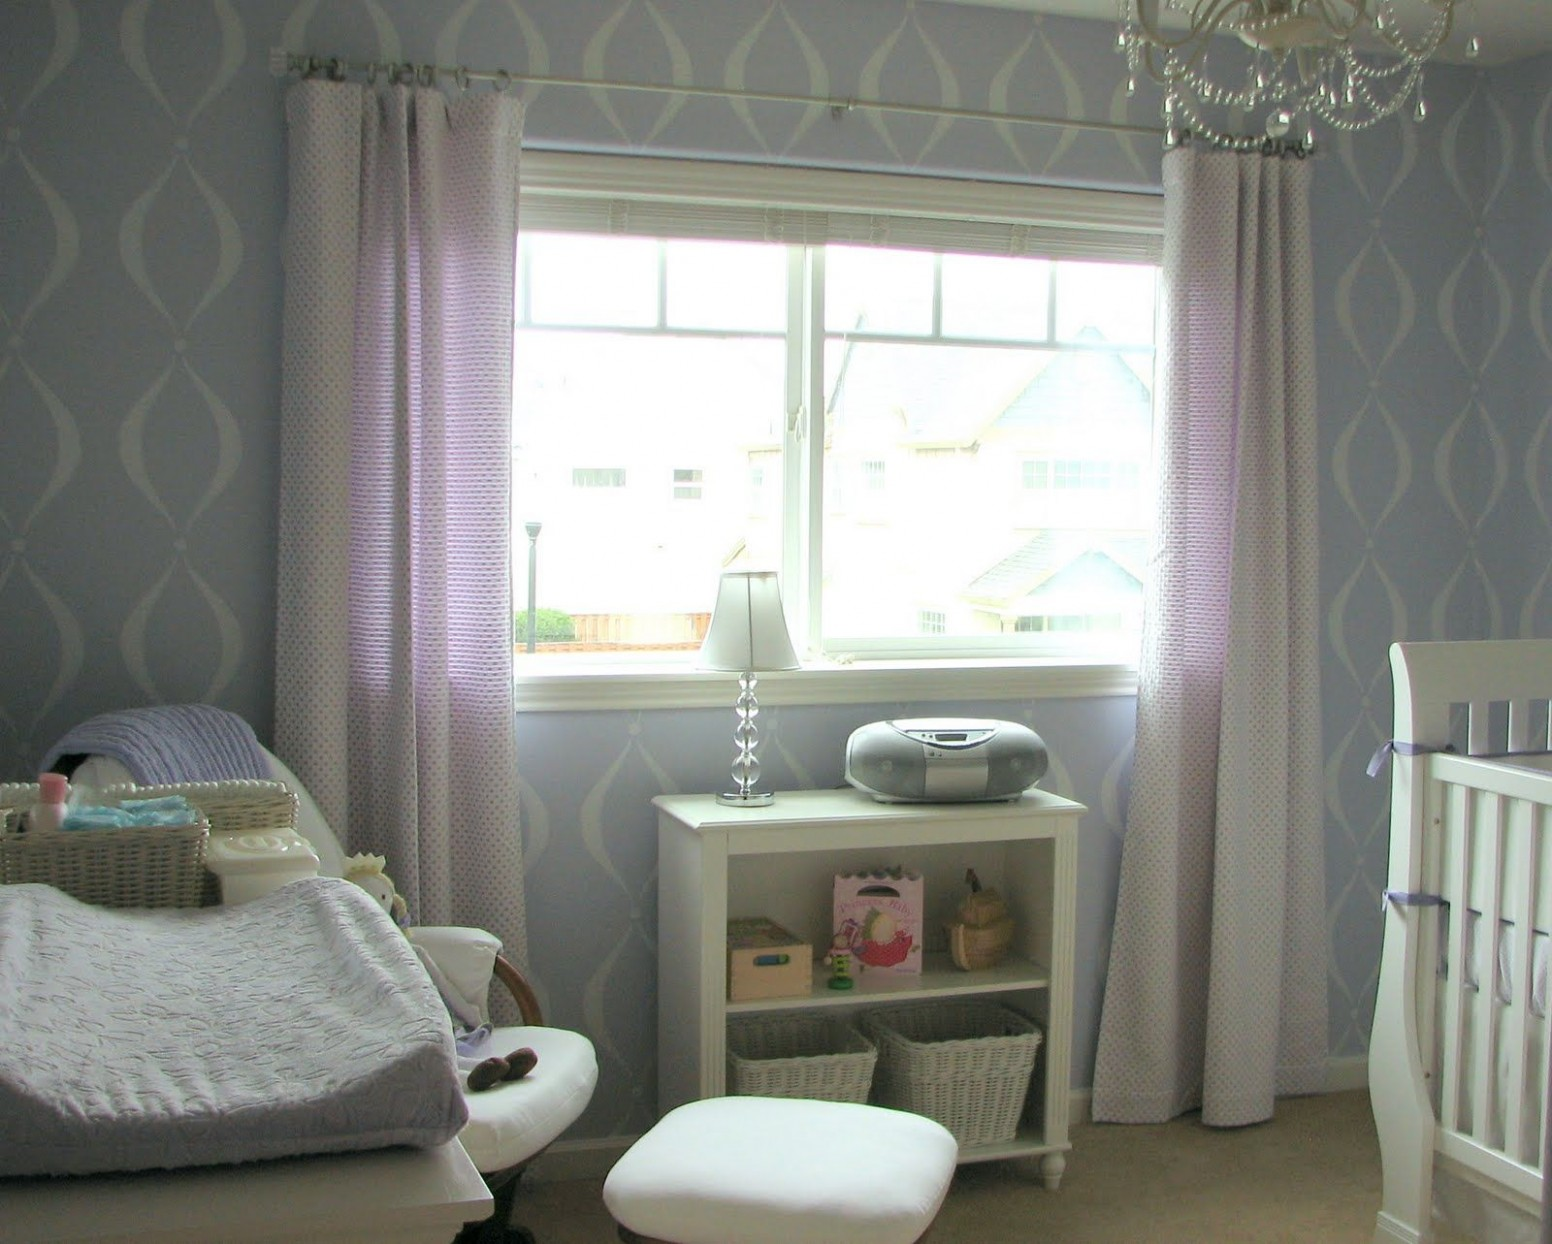 10 x 10 nursery layout - Google Search  Nursery furniture layout  - Baby Room Layout